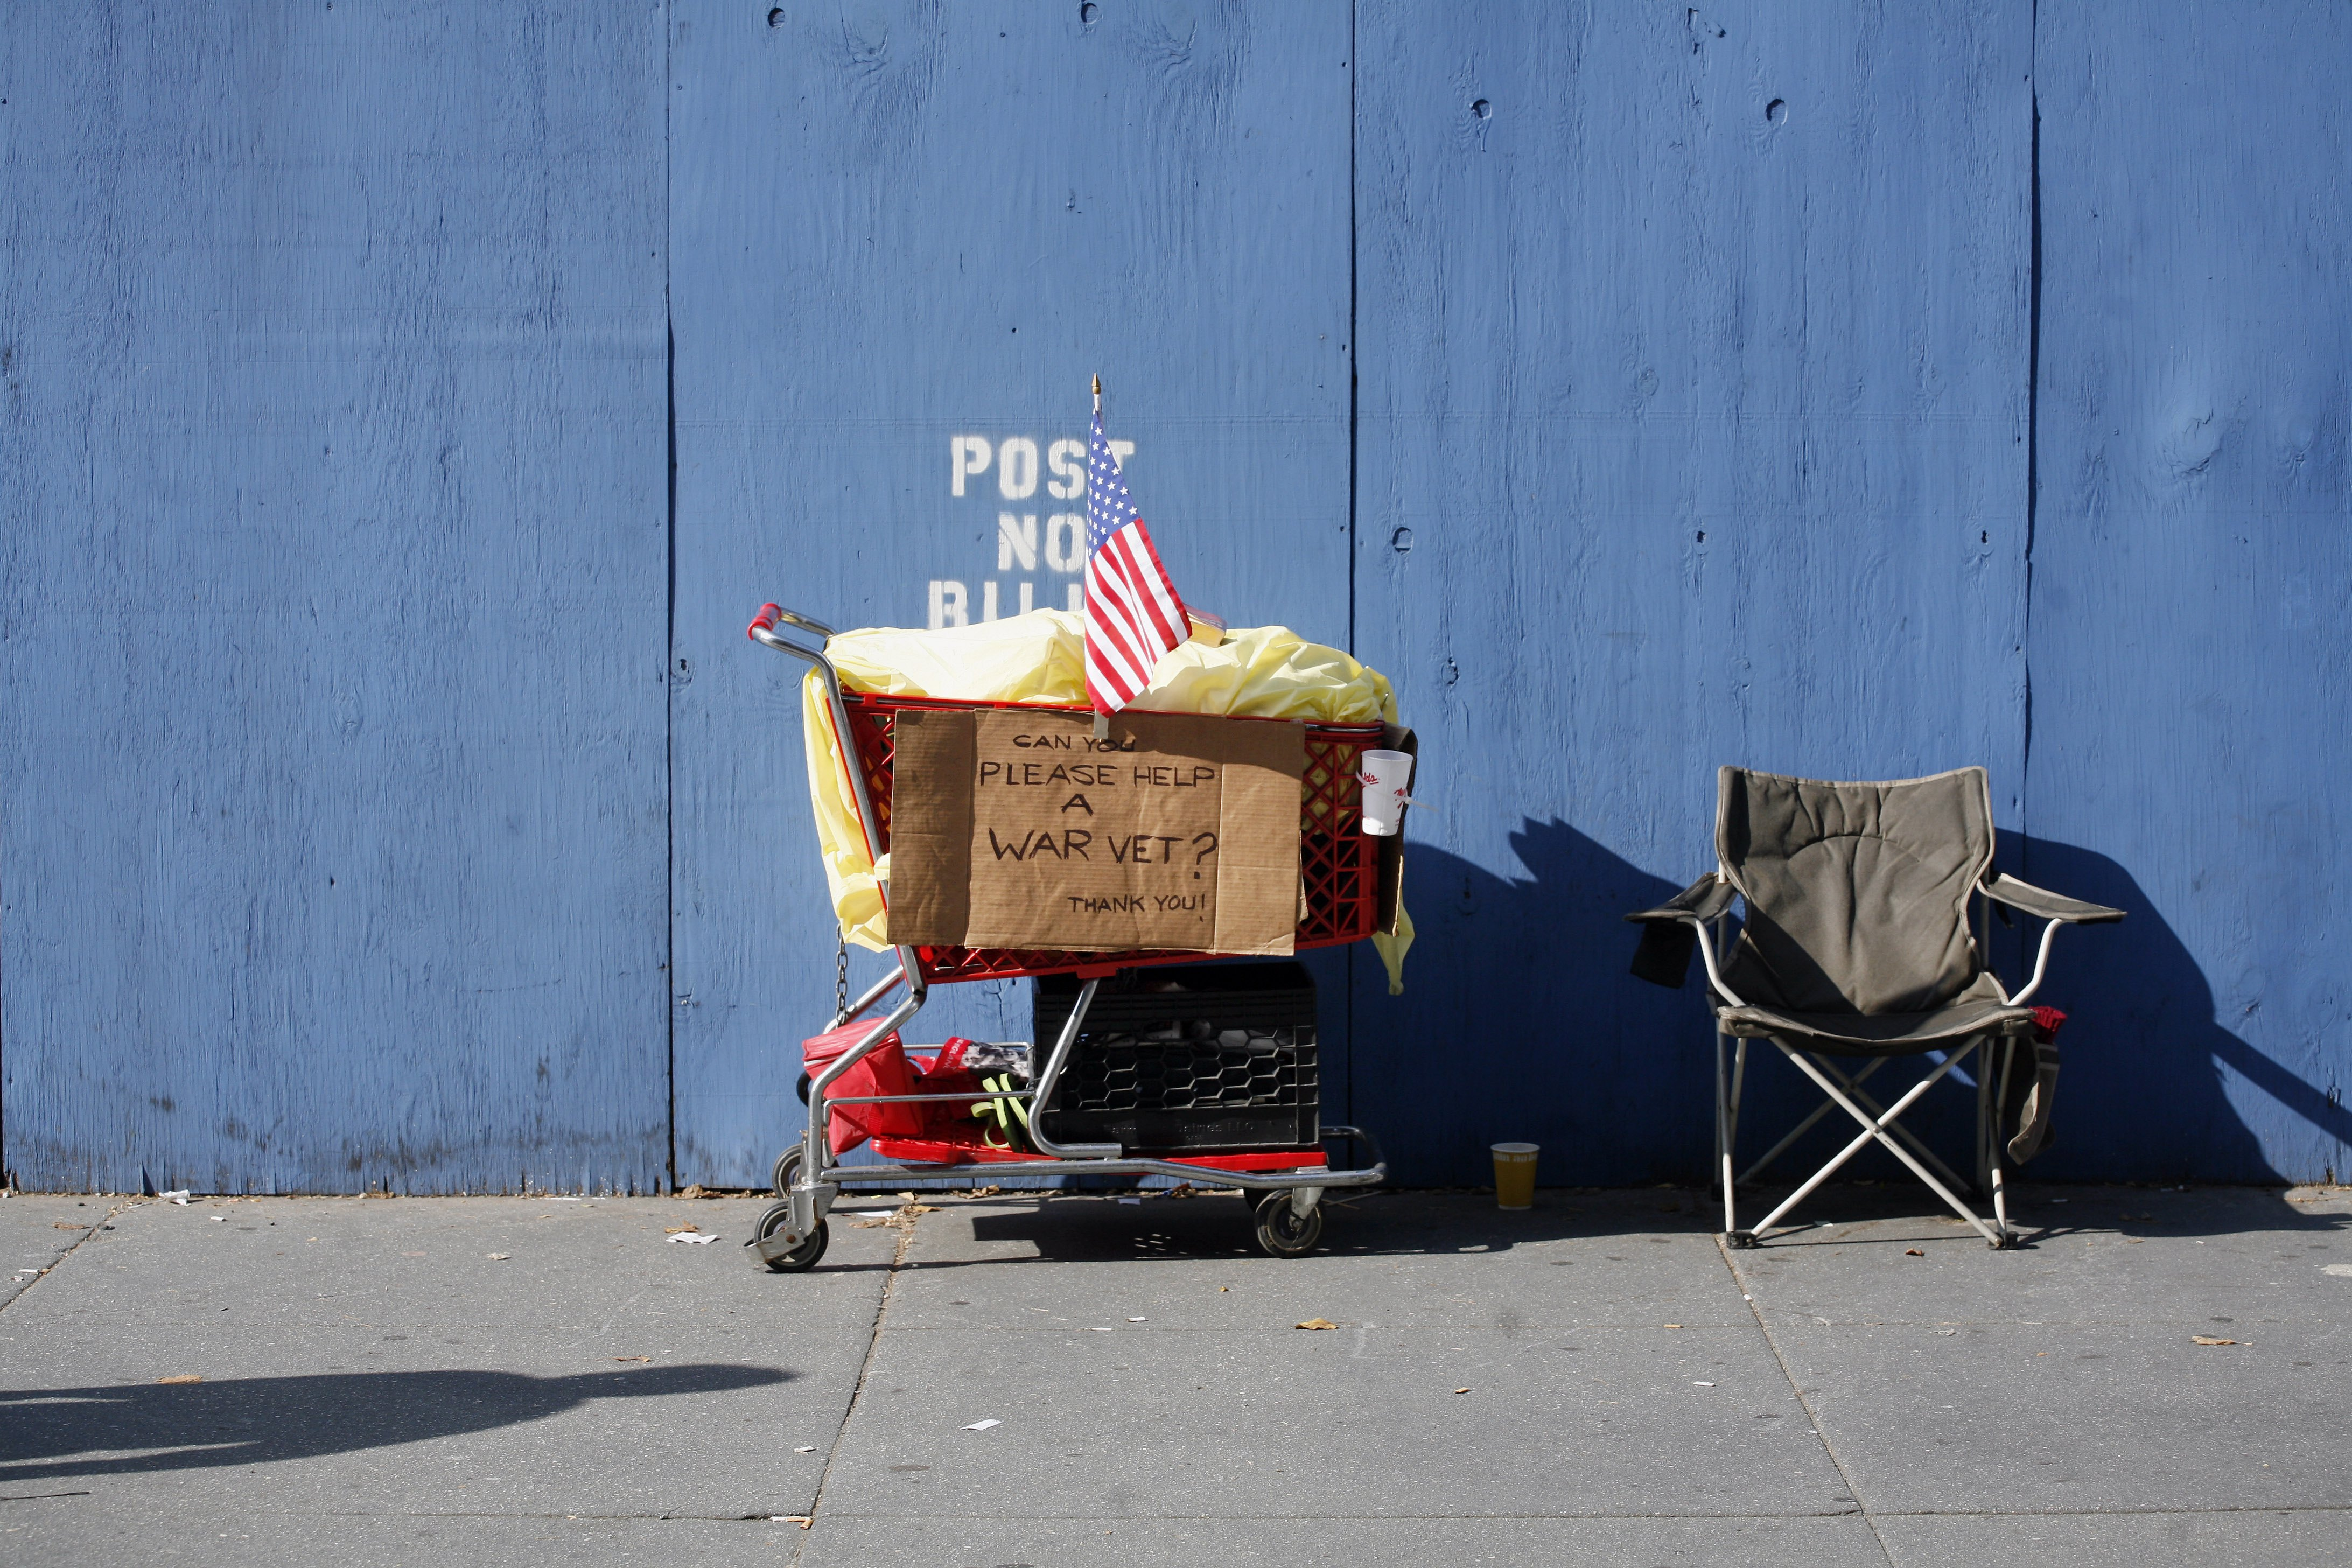 A homeless person's grocery cart and chair is shown along Fifth Avenue during the annual Veterans Day in 2006. (Photo by Michael Nagle/Getty Images)